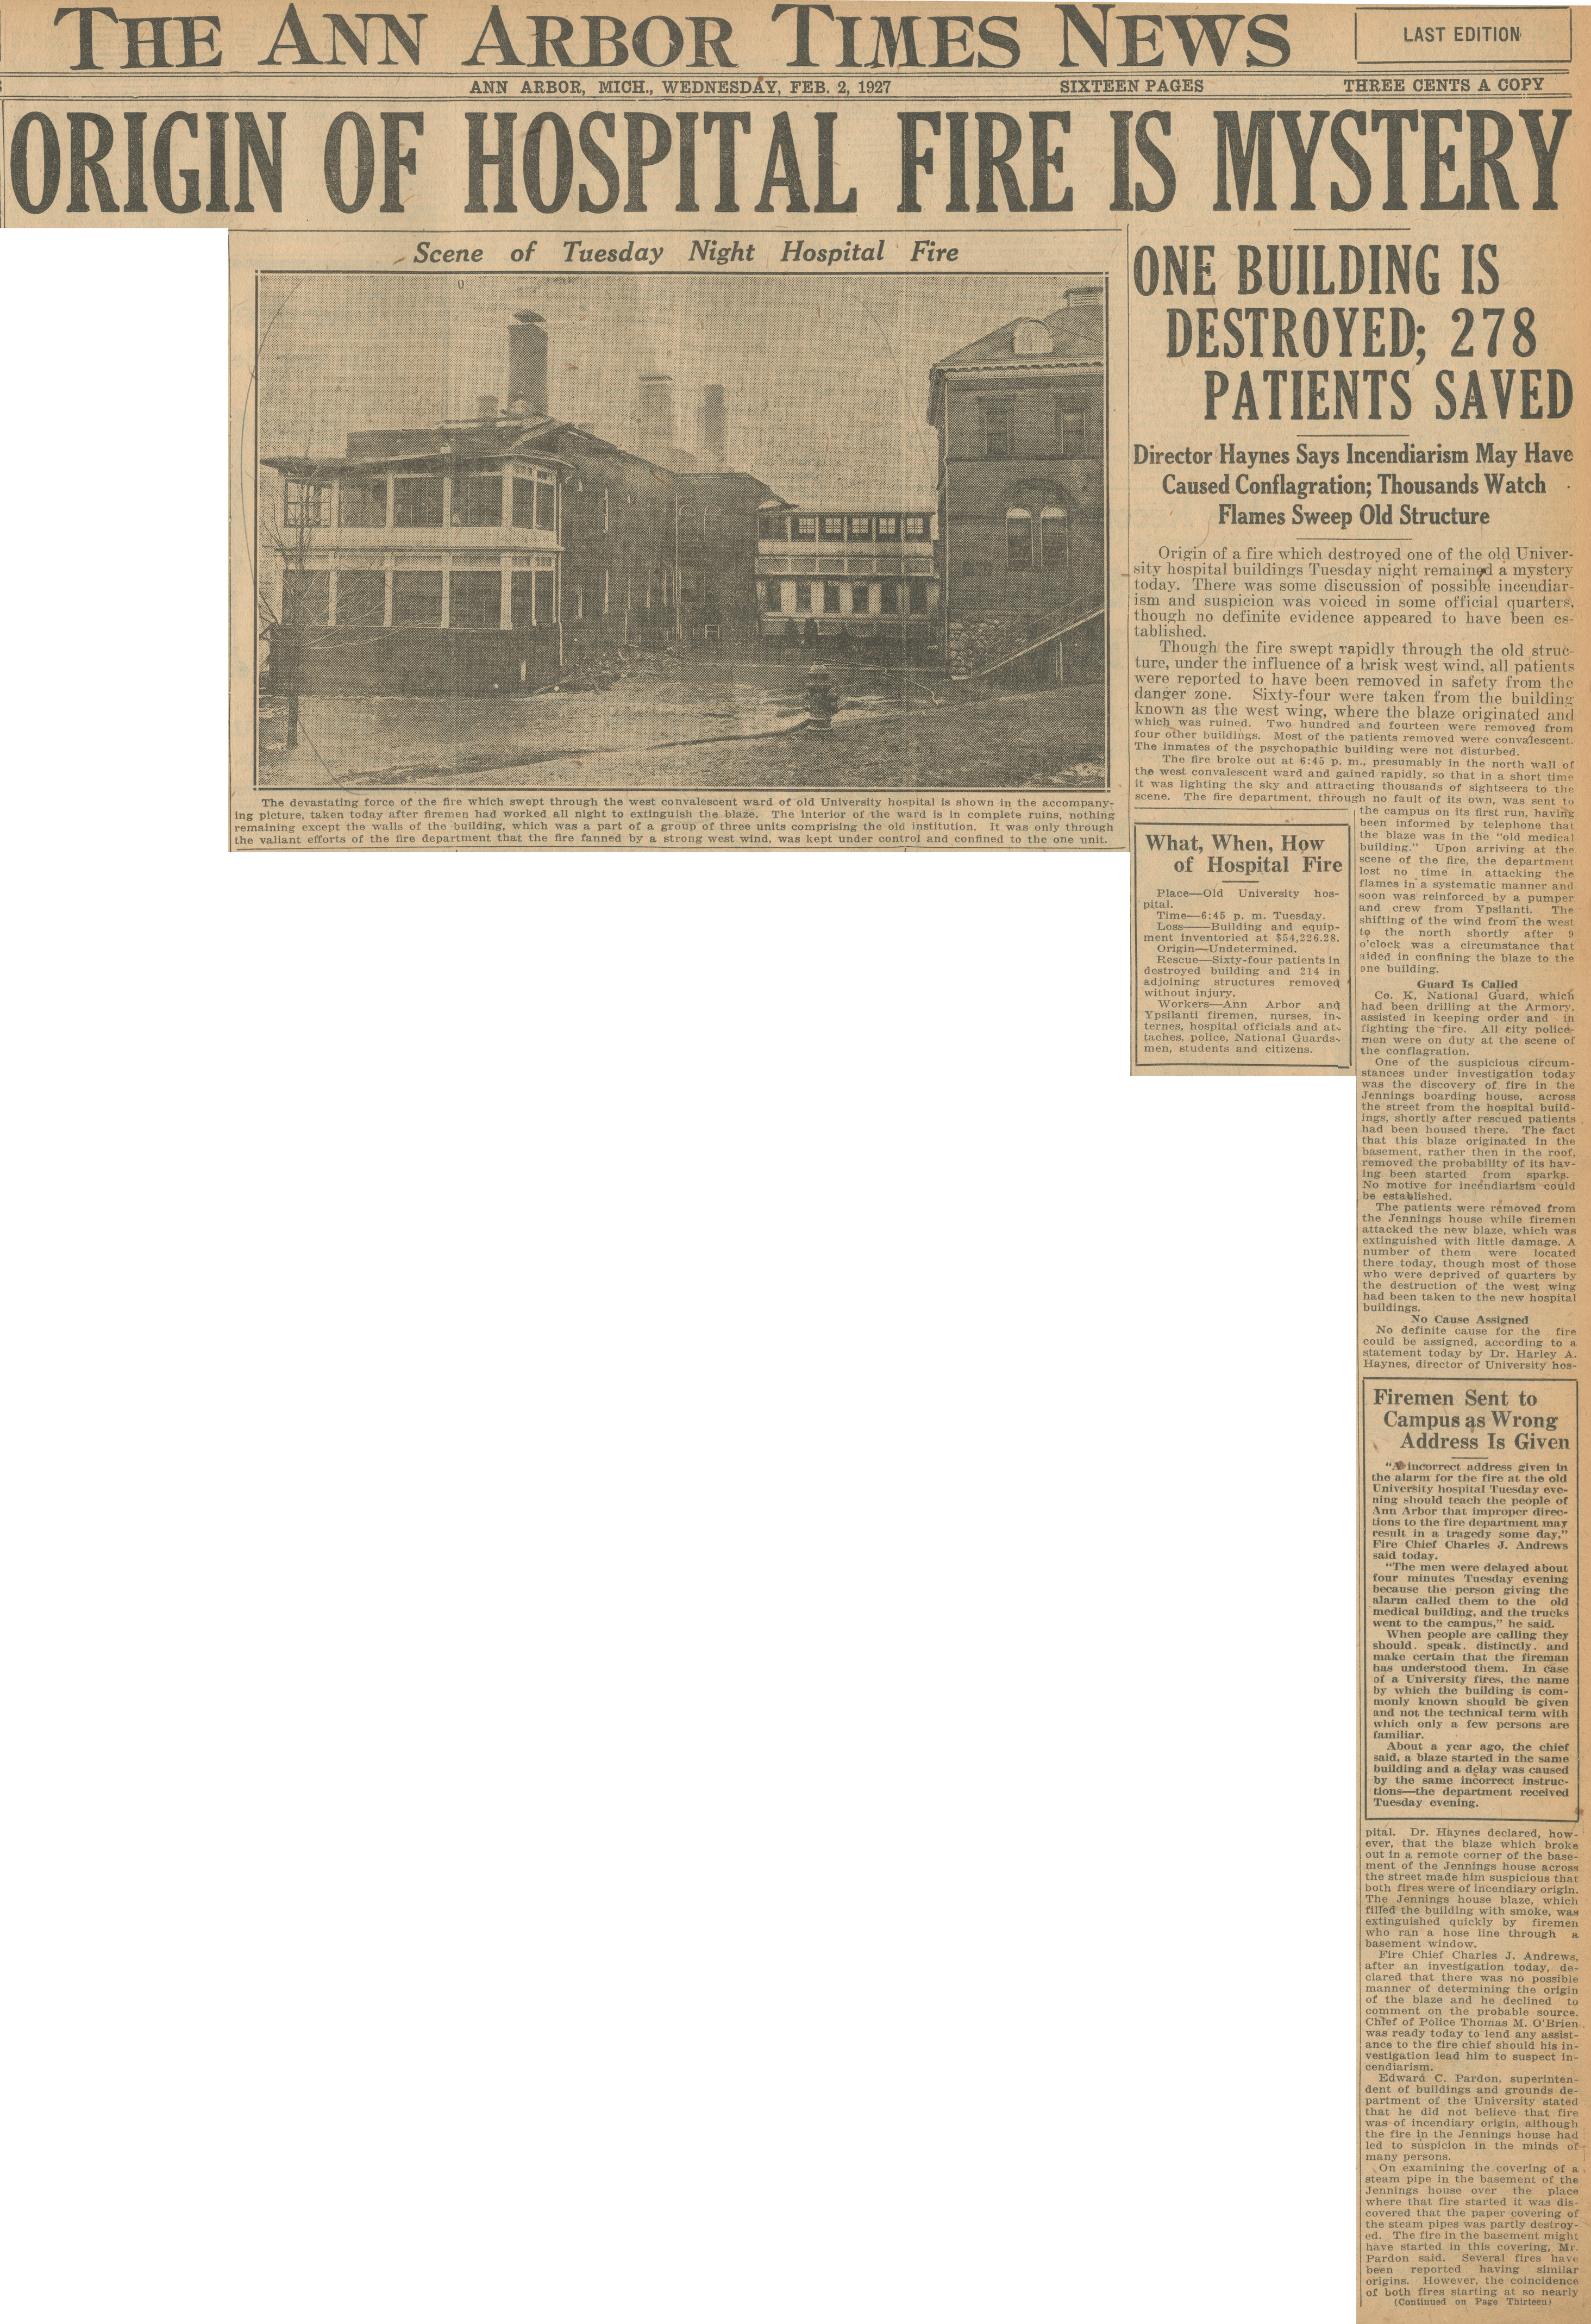 Origin Of Hospital Fire Is Mystery, February 2, 1927 image